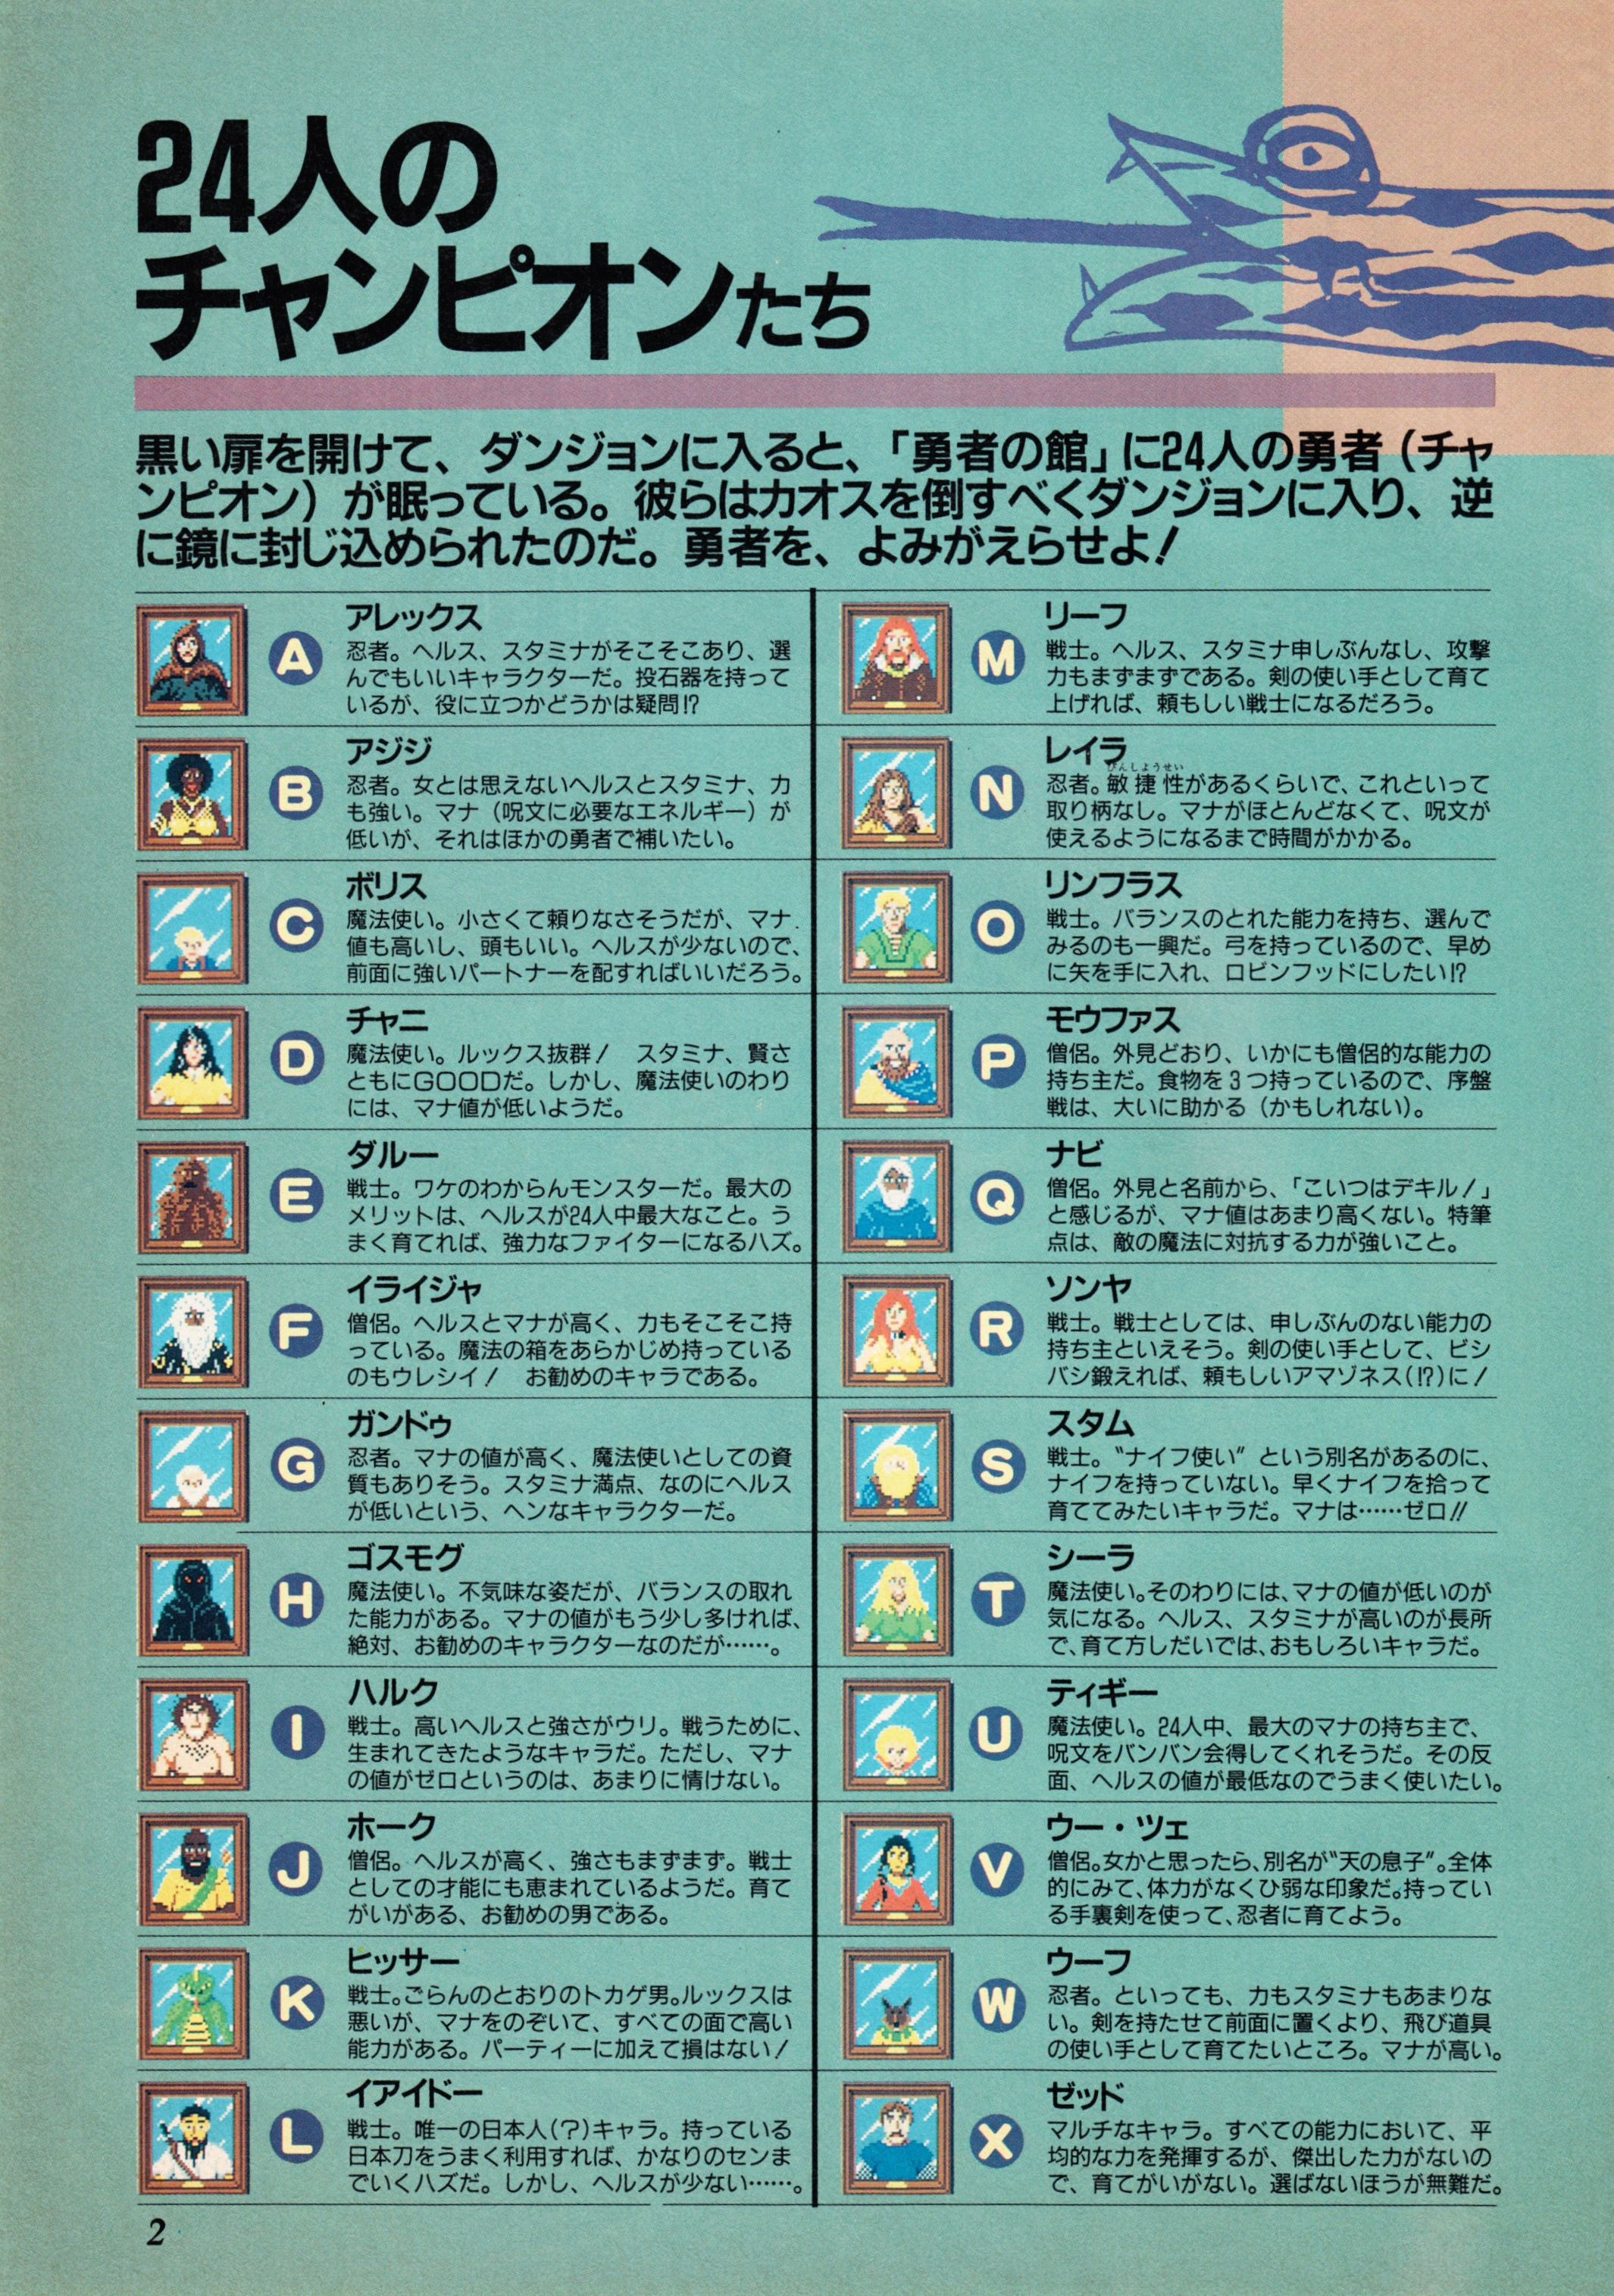 Supplement - Dungeon Master Companion Manual Guide published in Japanese magazine 'Popcom', Vol 4 No 1 01 April 1990, Page 4